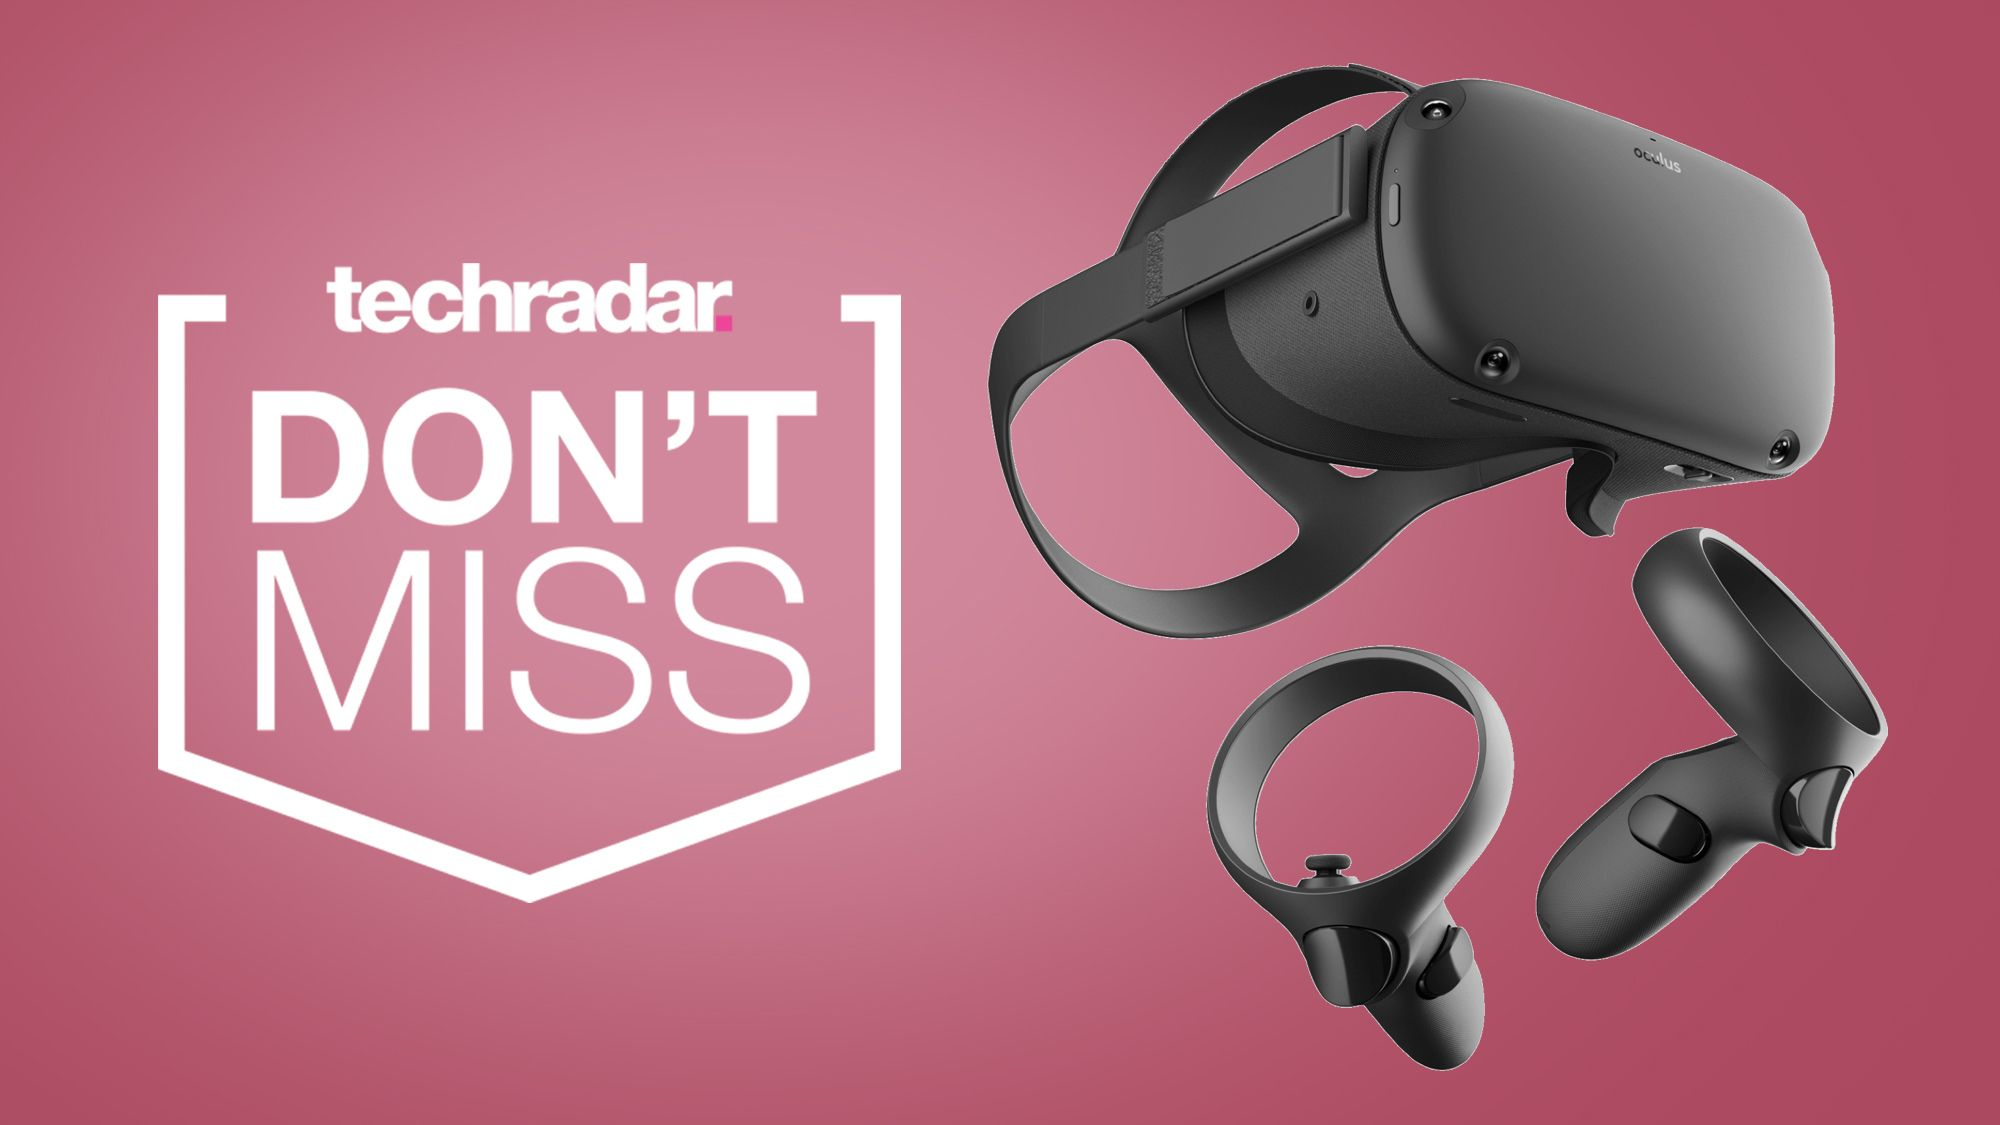 Get Half Price Vr Games In These Oculus Cyber Monday Bundles Vr Games Cyber Monday Fun To Be One